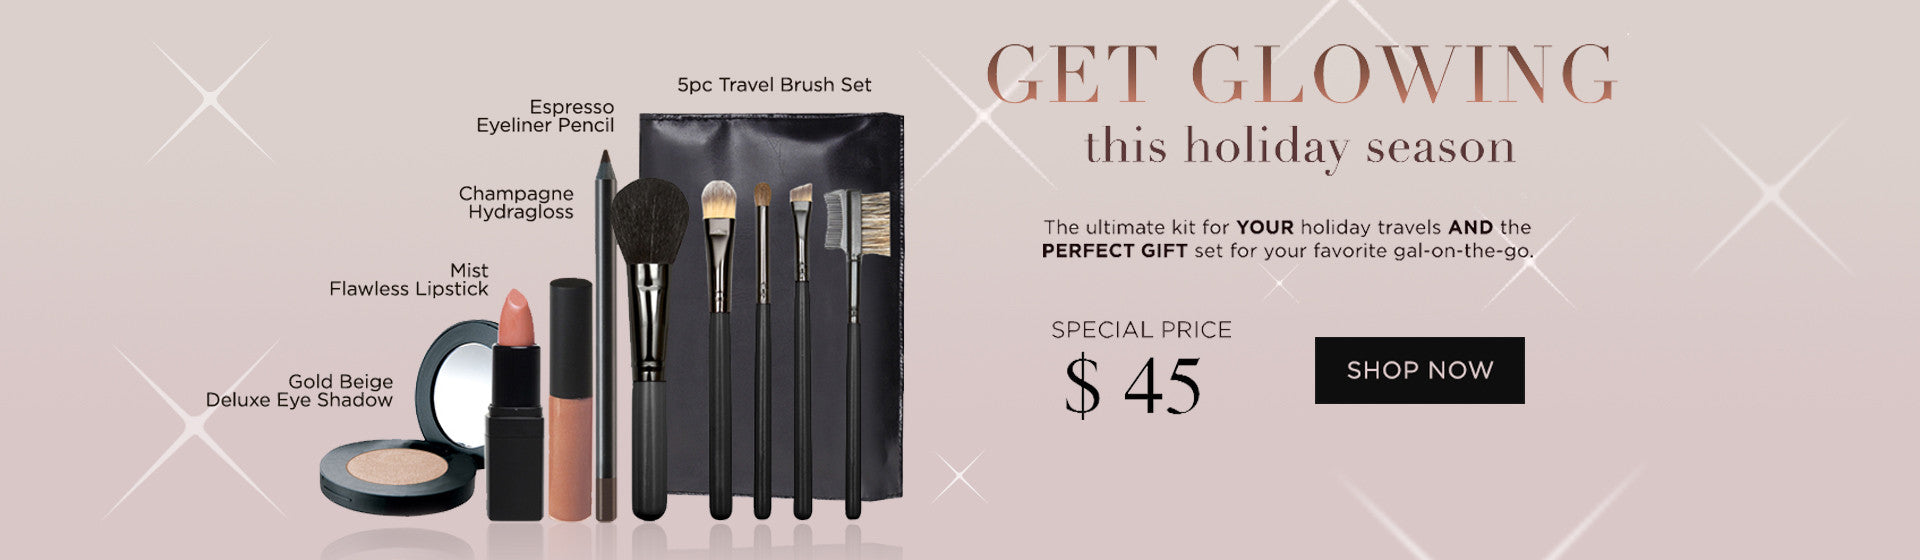 Get Glowing Holiday Makeup Set